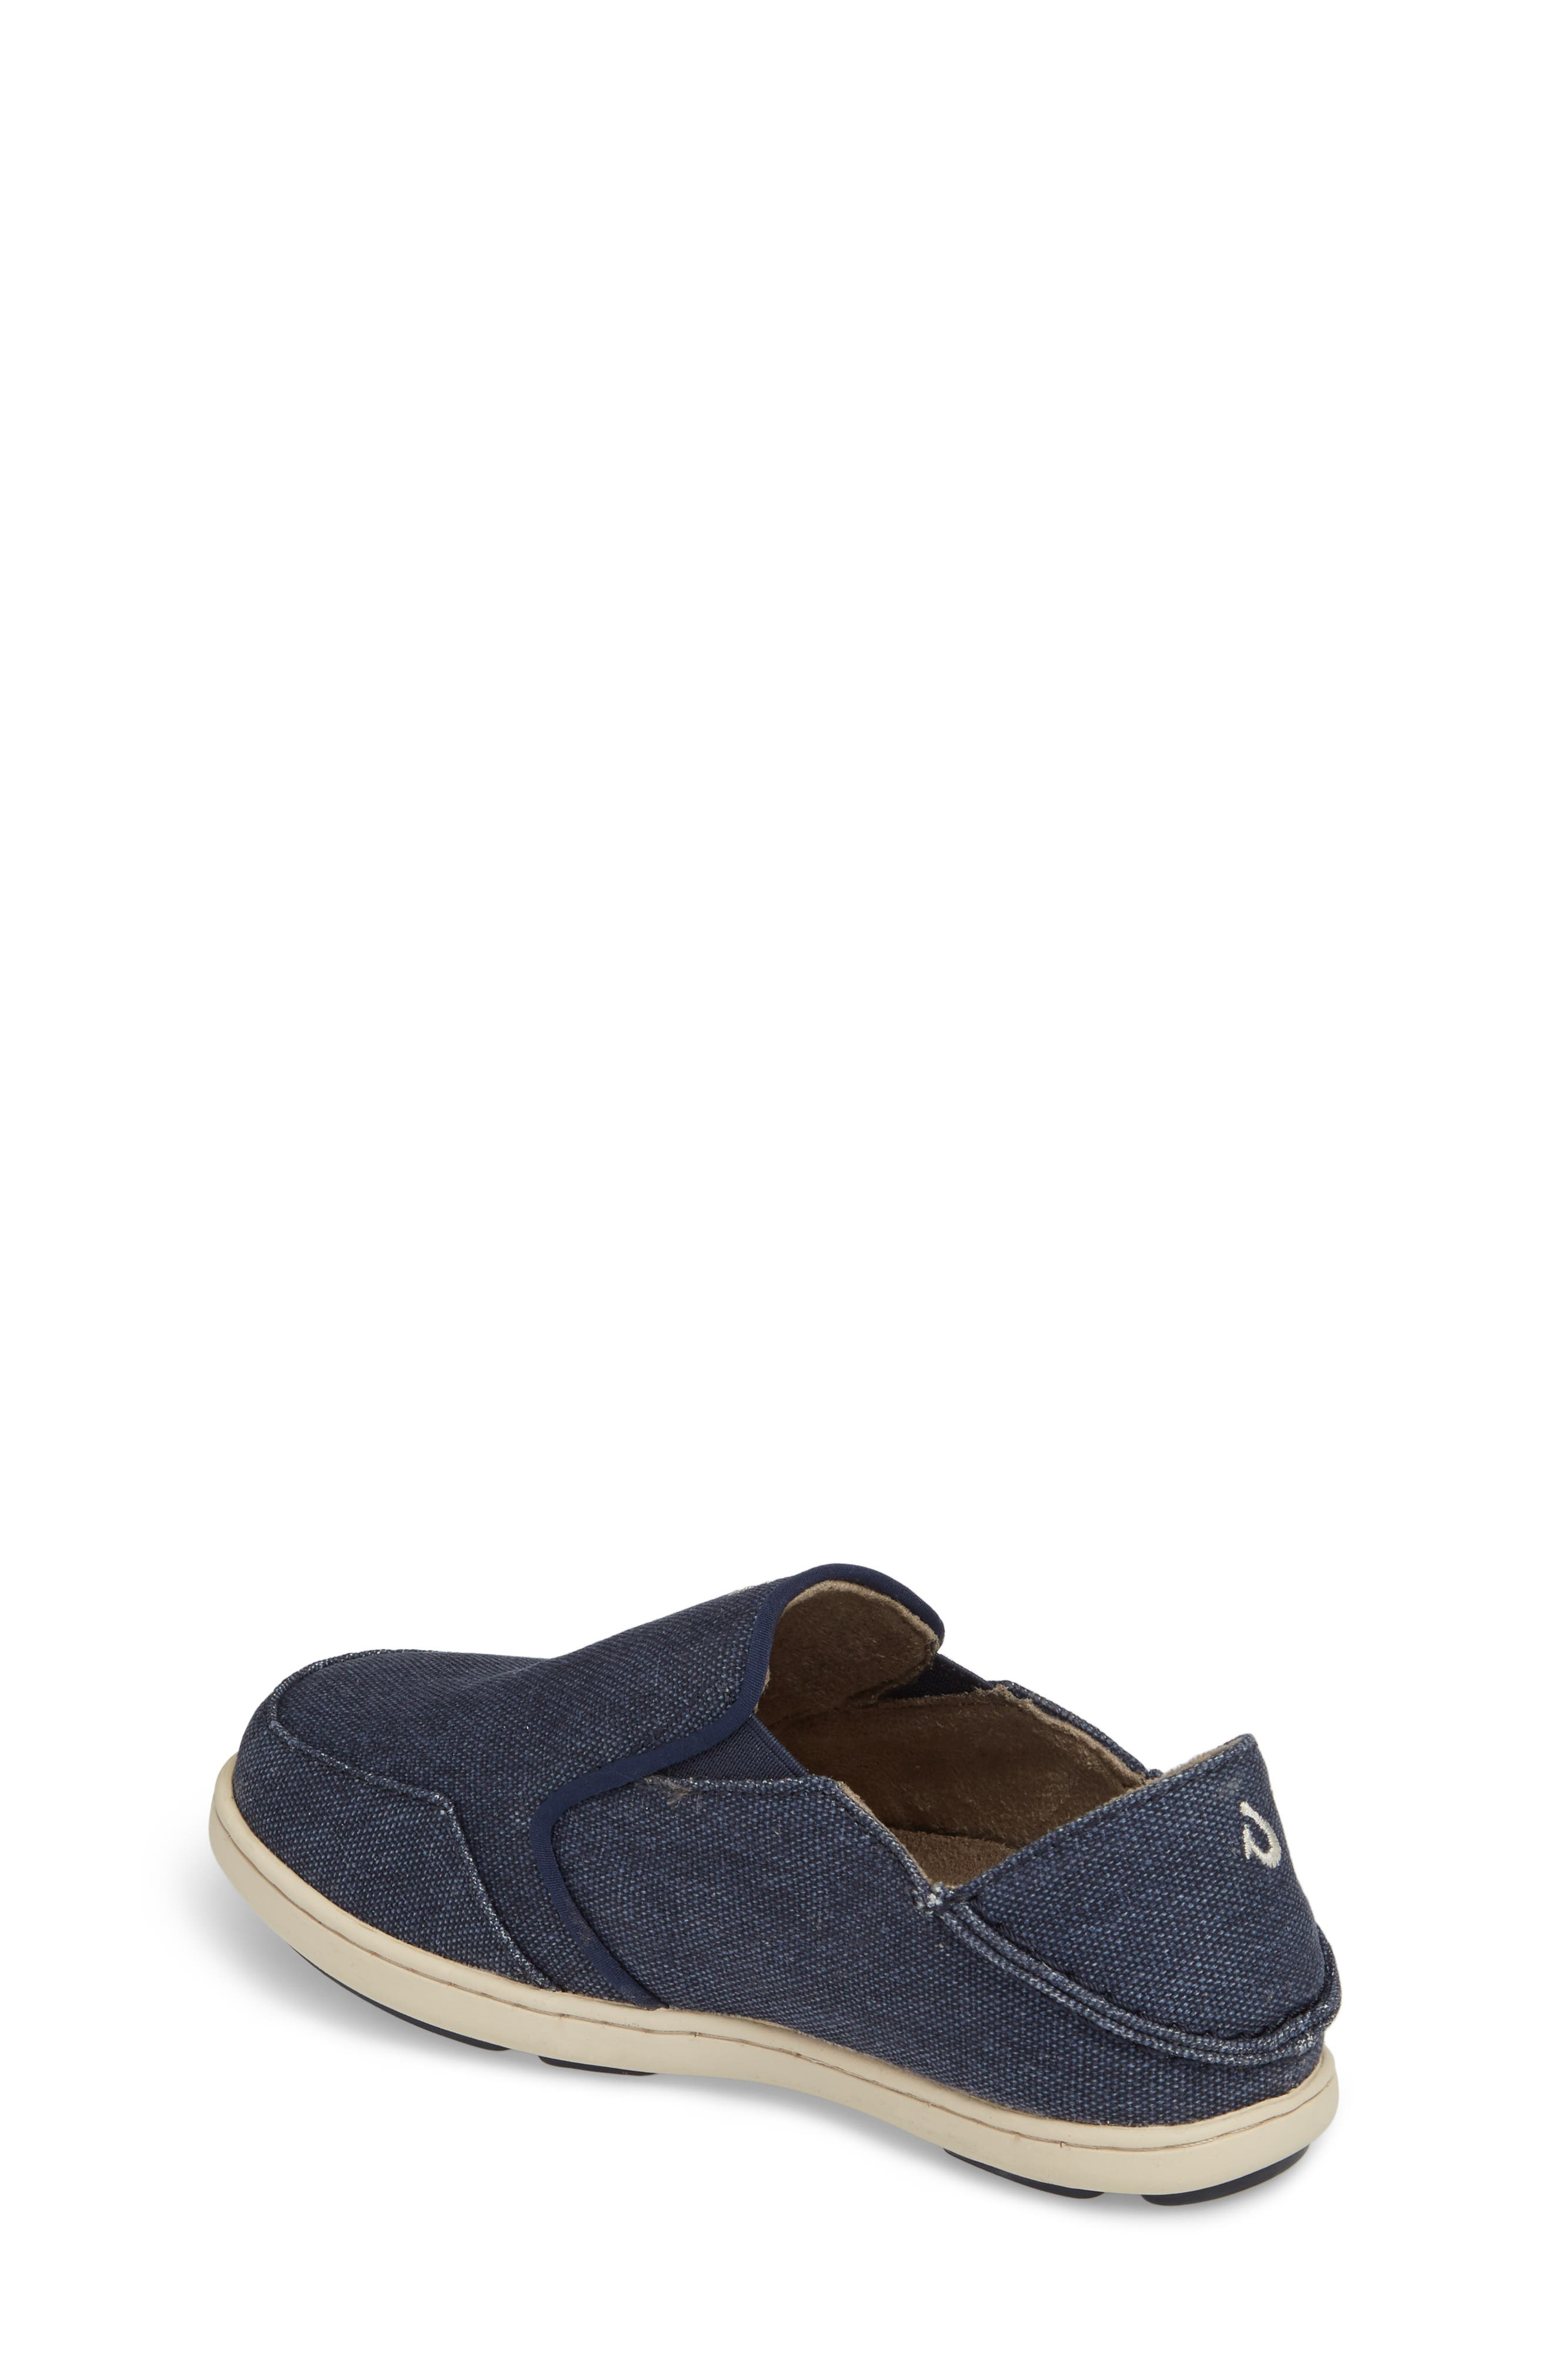 Nohea Lole Collapsible Slip-On,                             Alternate thumbnail 2, color,                             Trench Blue